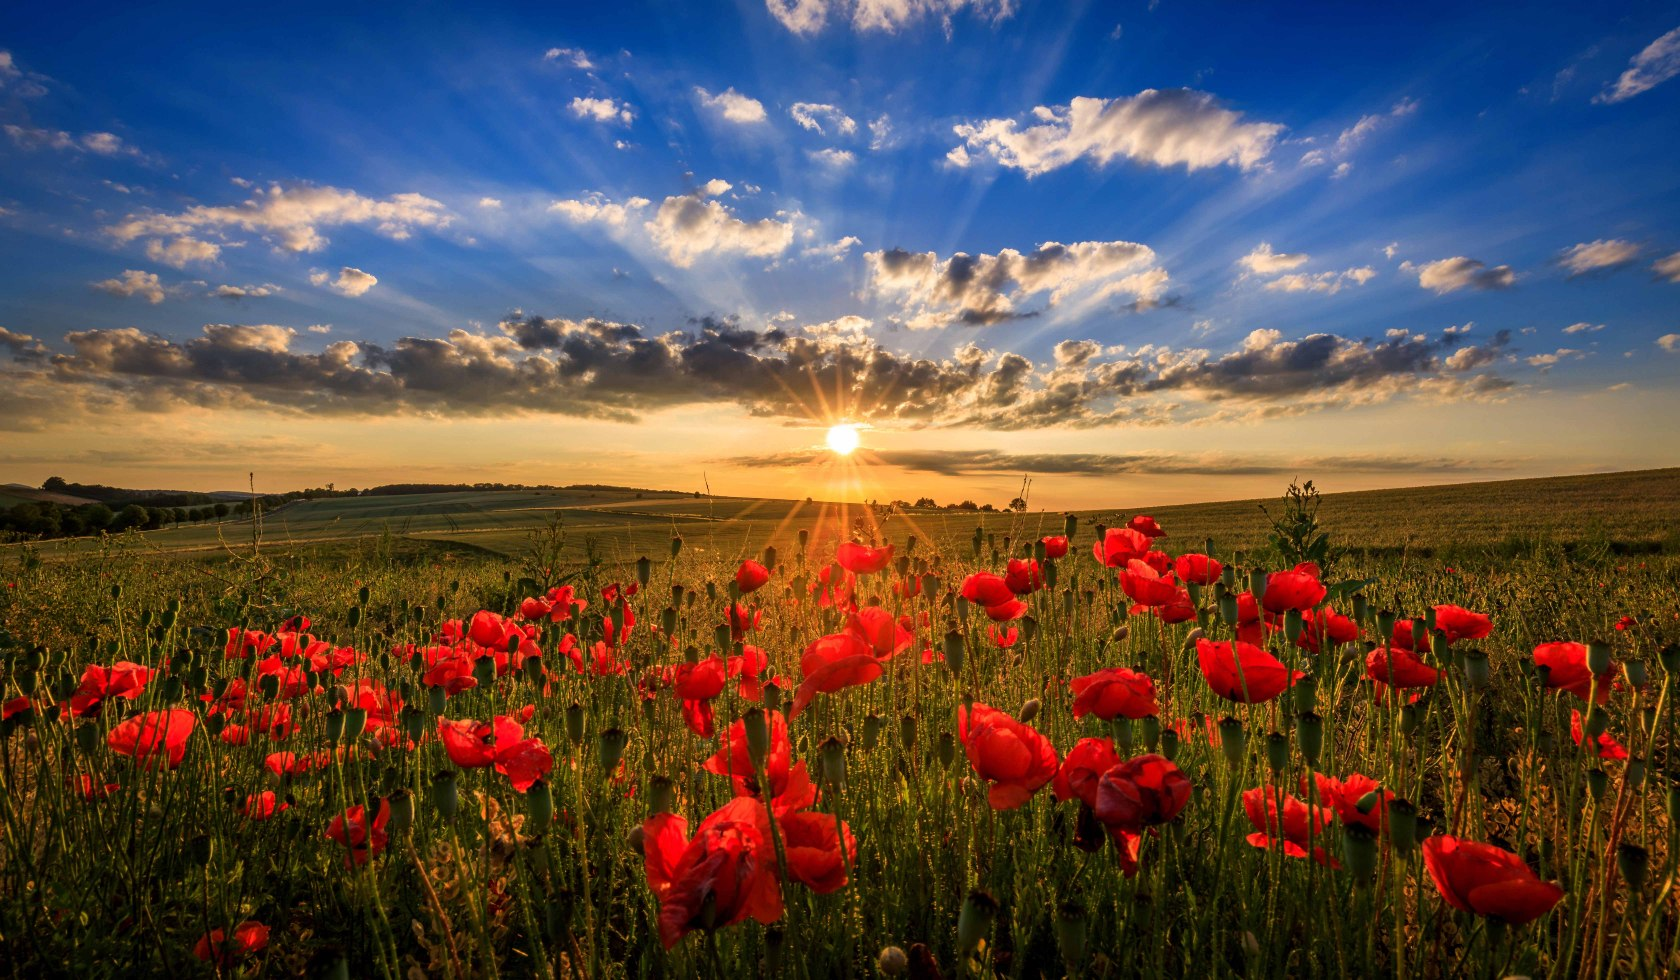 Low sun over poppies and cereal fields